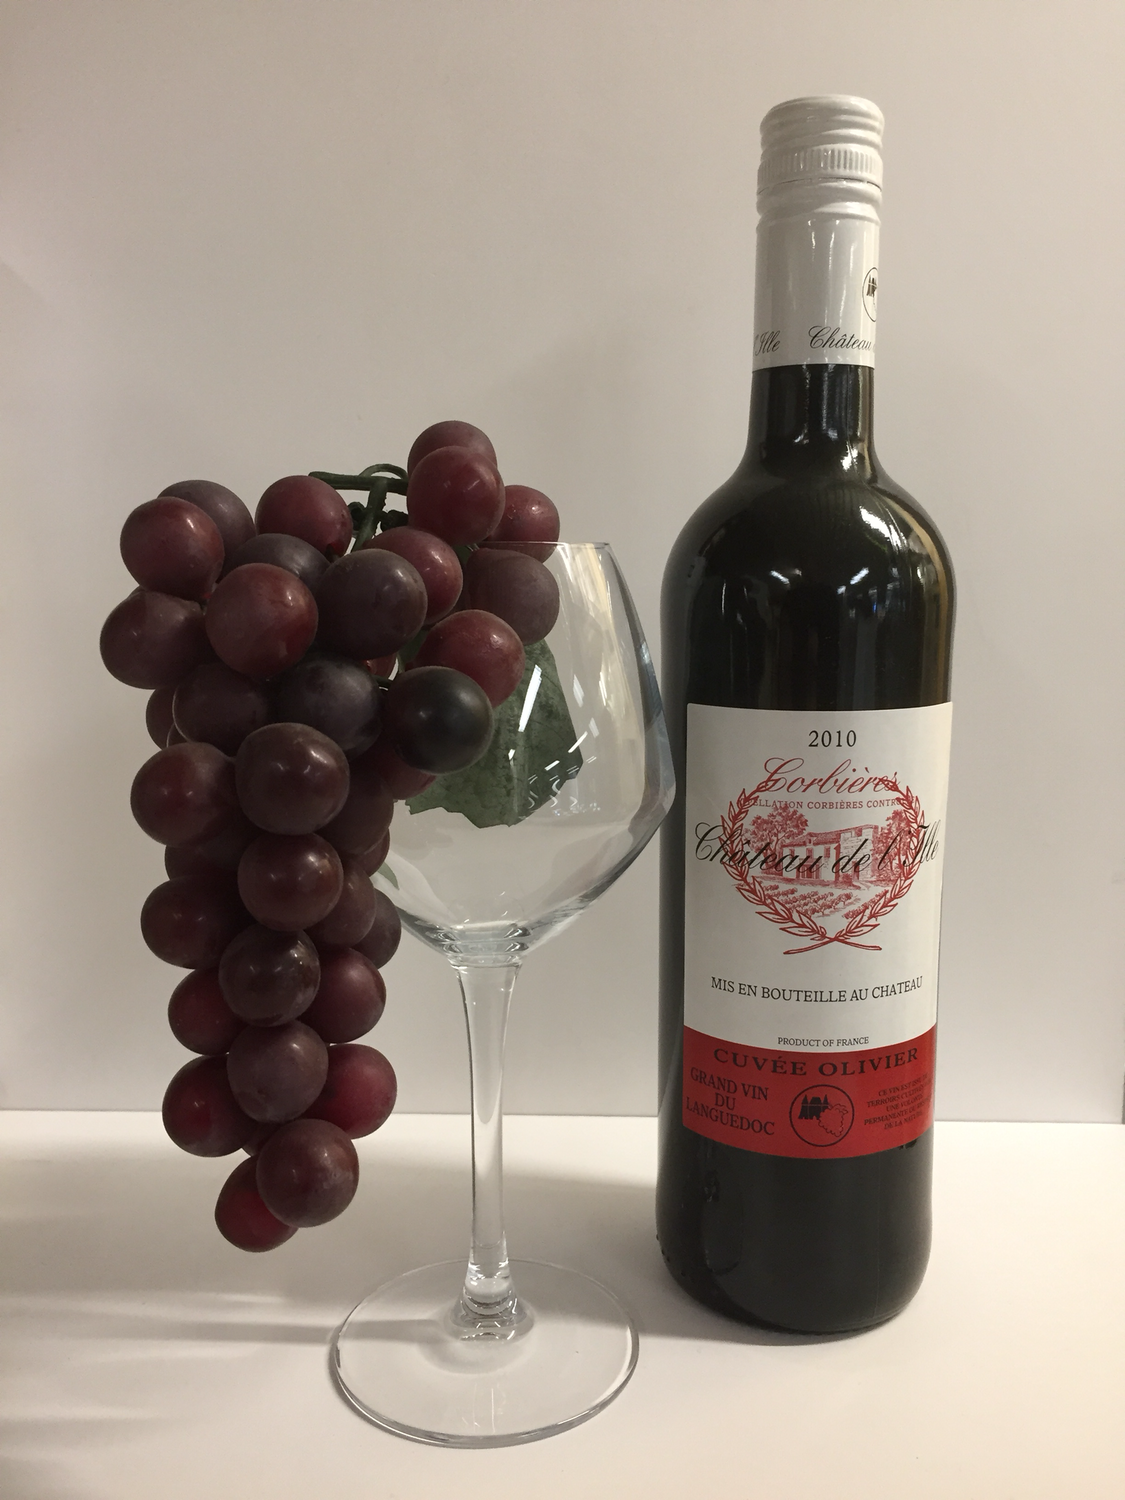 Chateau de Lille cuvee olivier rood 2010